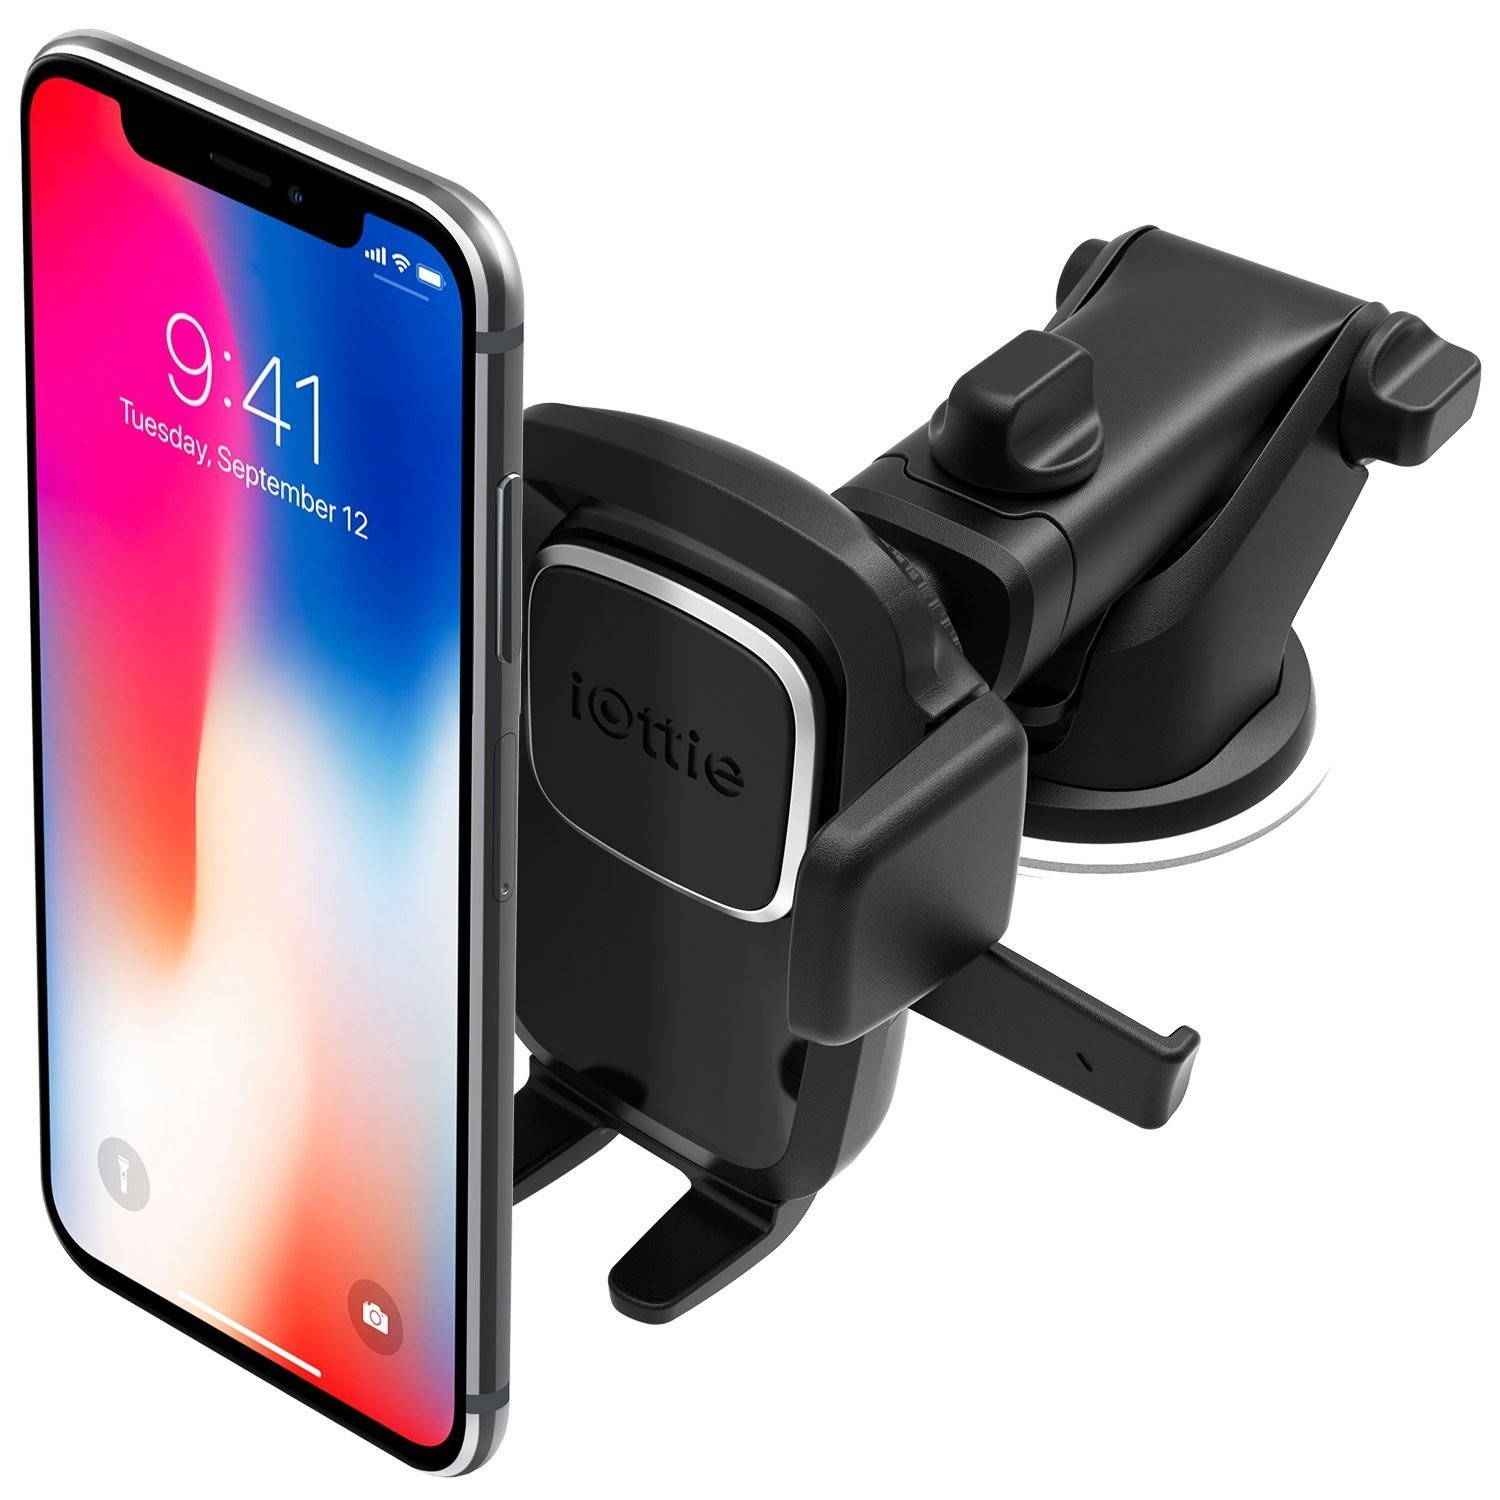 iOttie Easy One Touch 4 Car & Desk Mount Phone Holder for iPhone XS / XS Max / XR / X / 8 / 8 Plus 7 / 7 Plus 6S/ 6S Plus 6 / 6 Plus 5s 5c, Samsung Galaxy, HLCRIO125